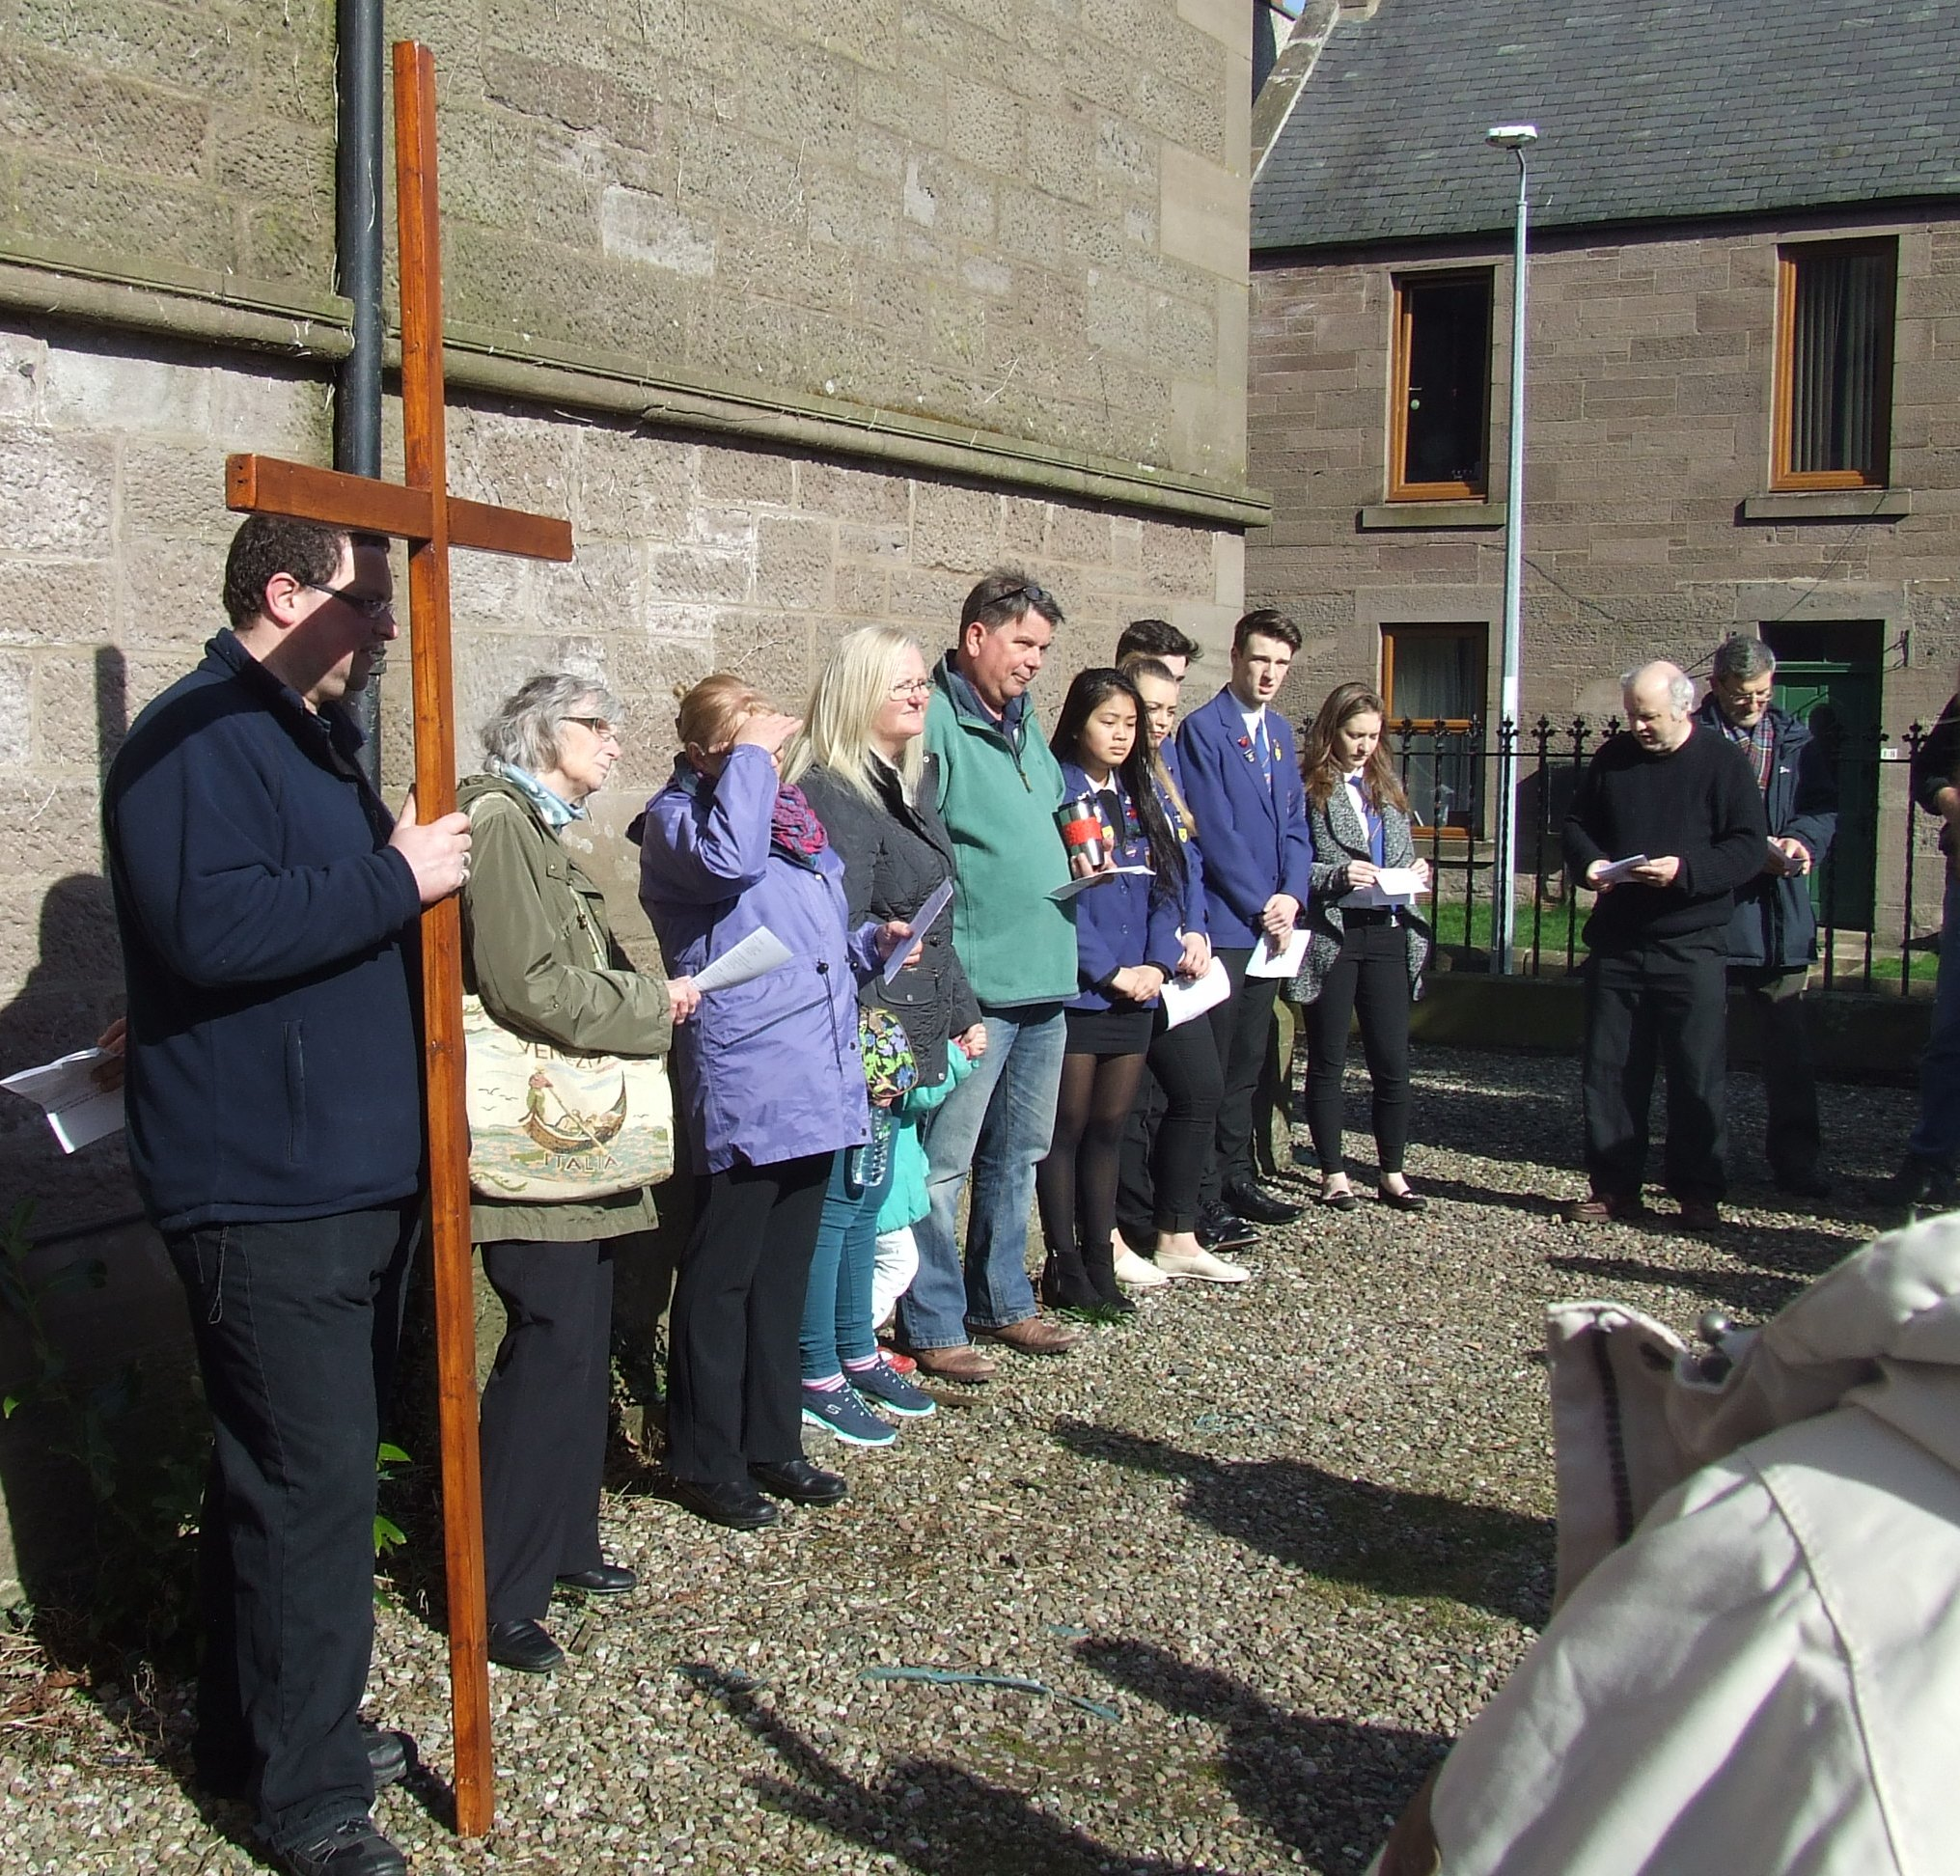 6. Reading, Meditation and Prayer at St. Ninian\'s Church